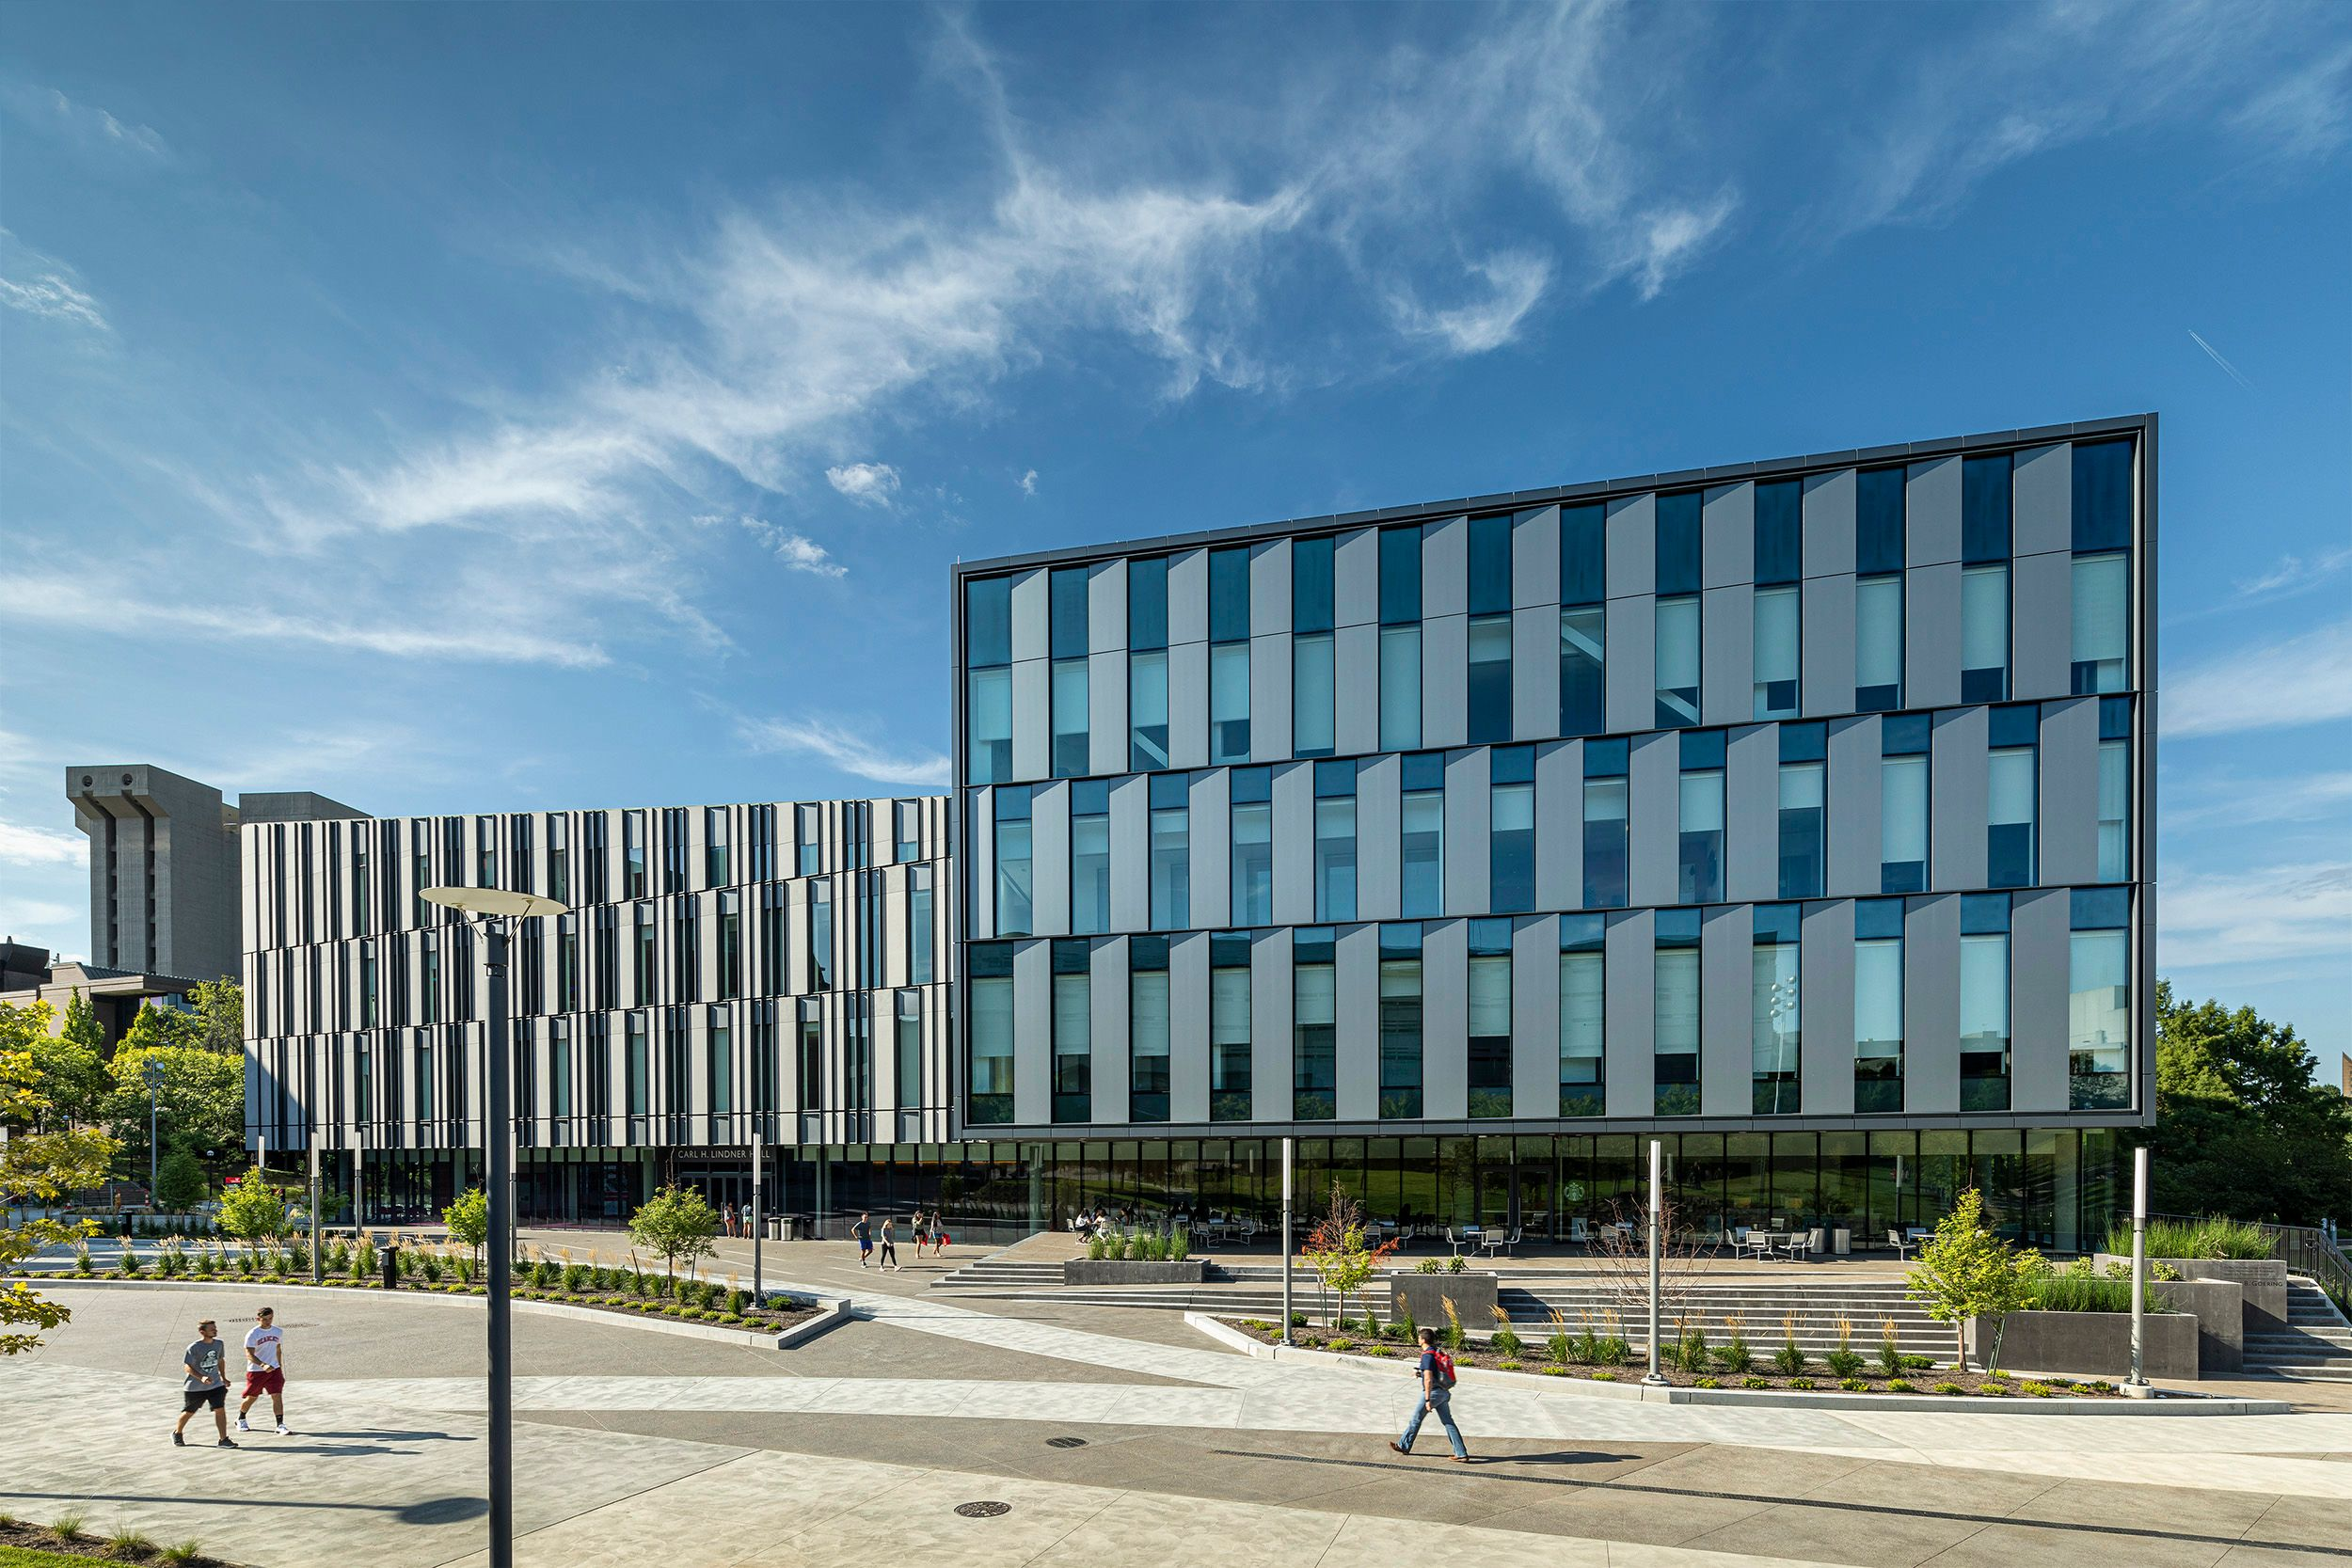 Architectural photographer Lindner Business College University of Cincinnati